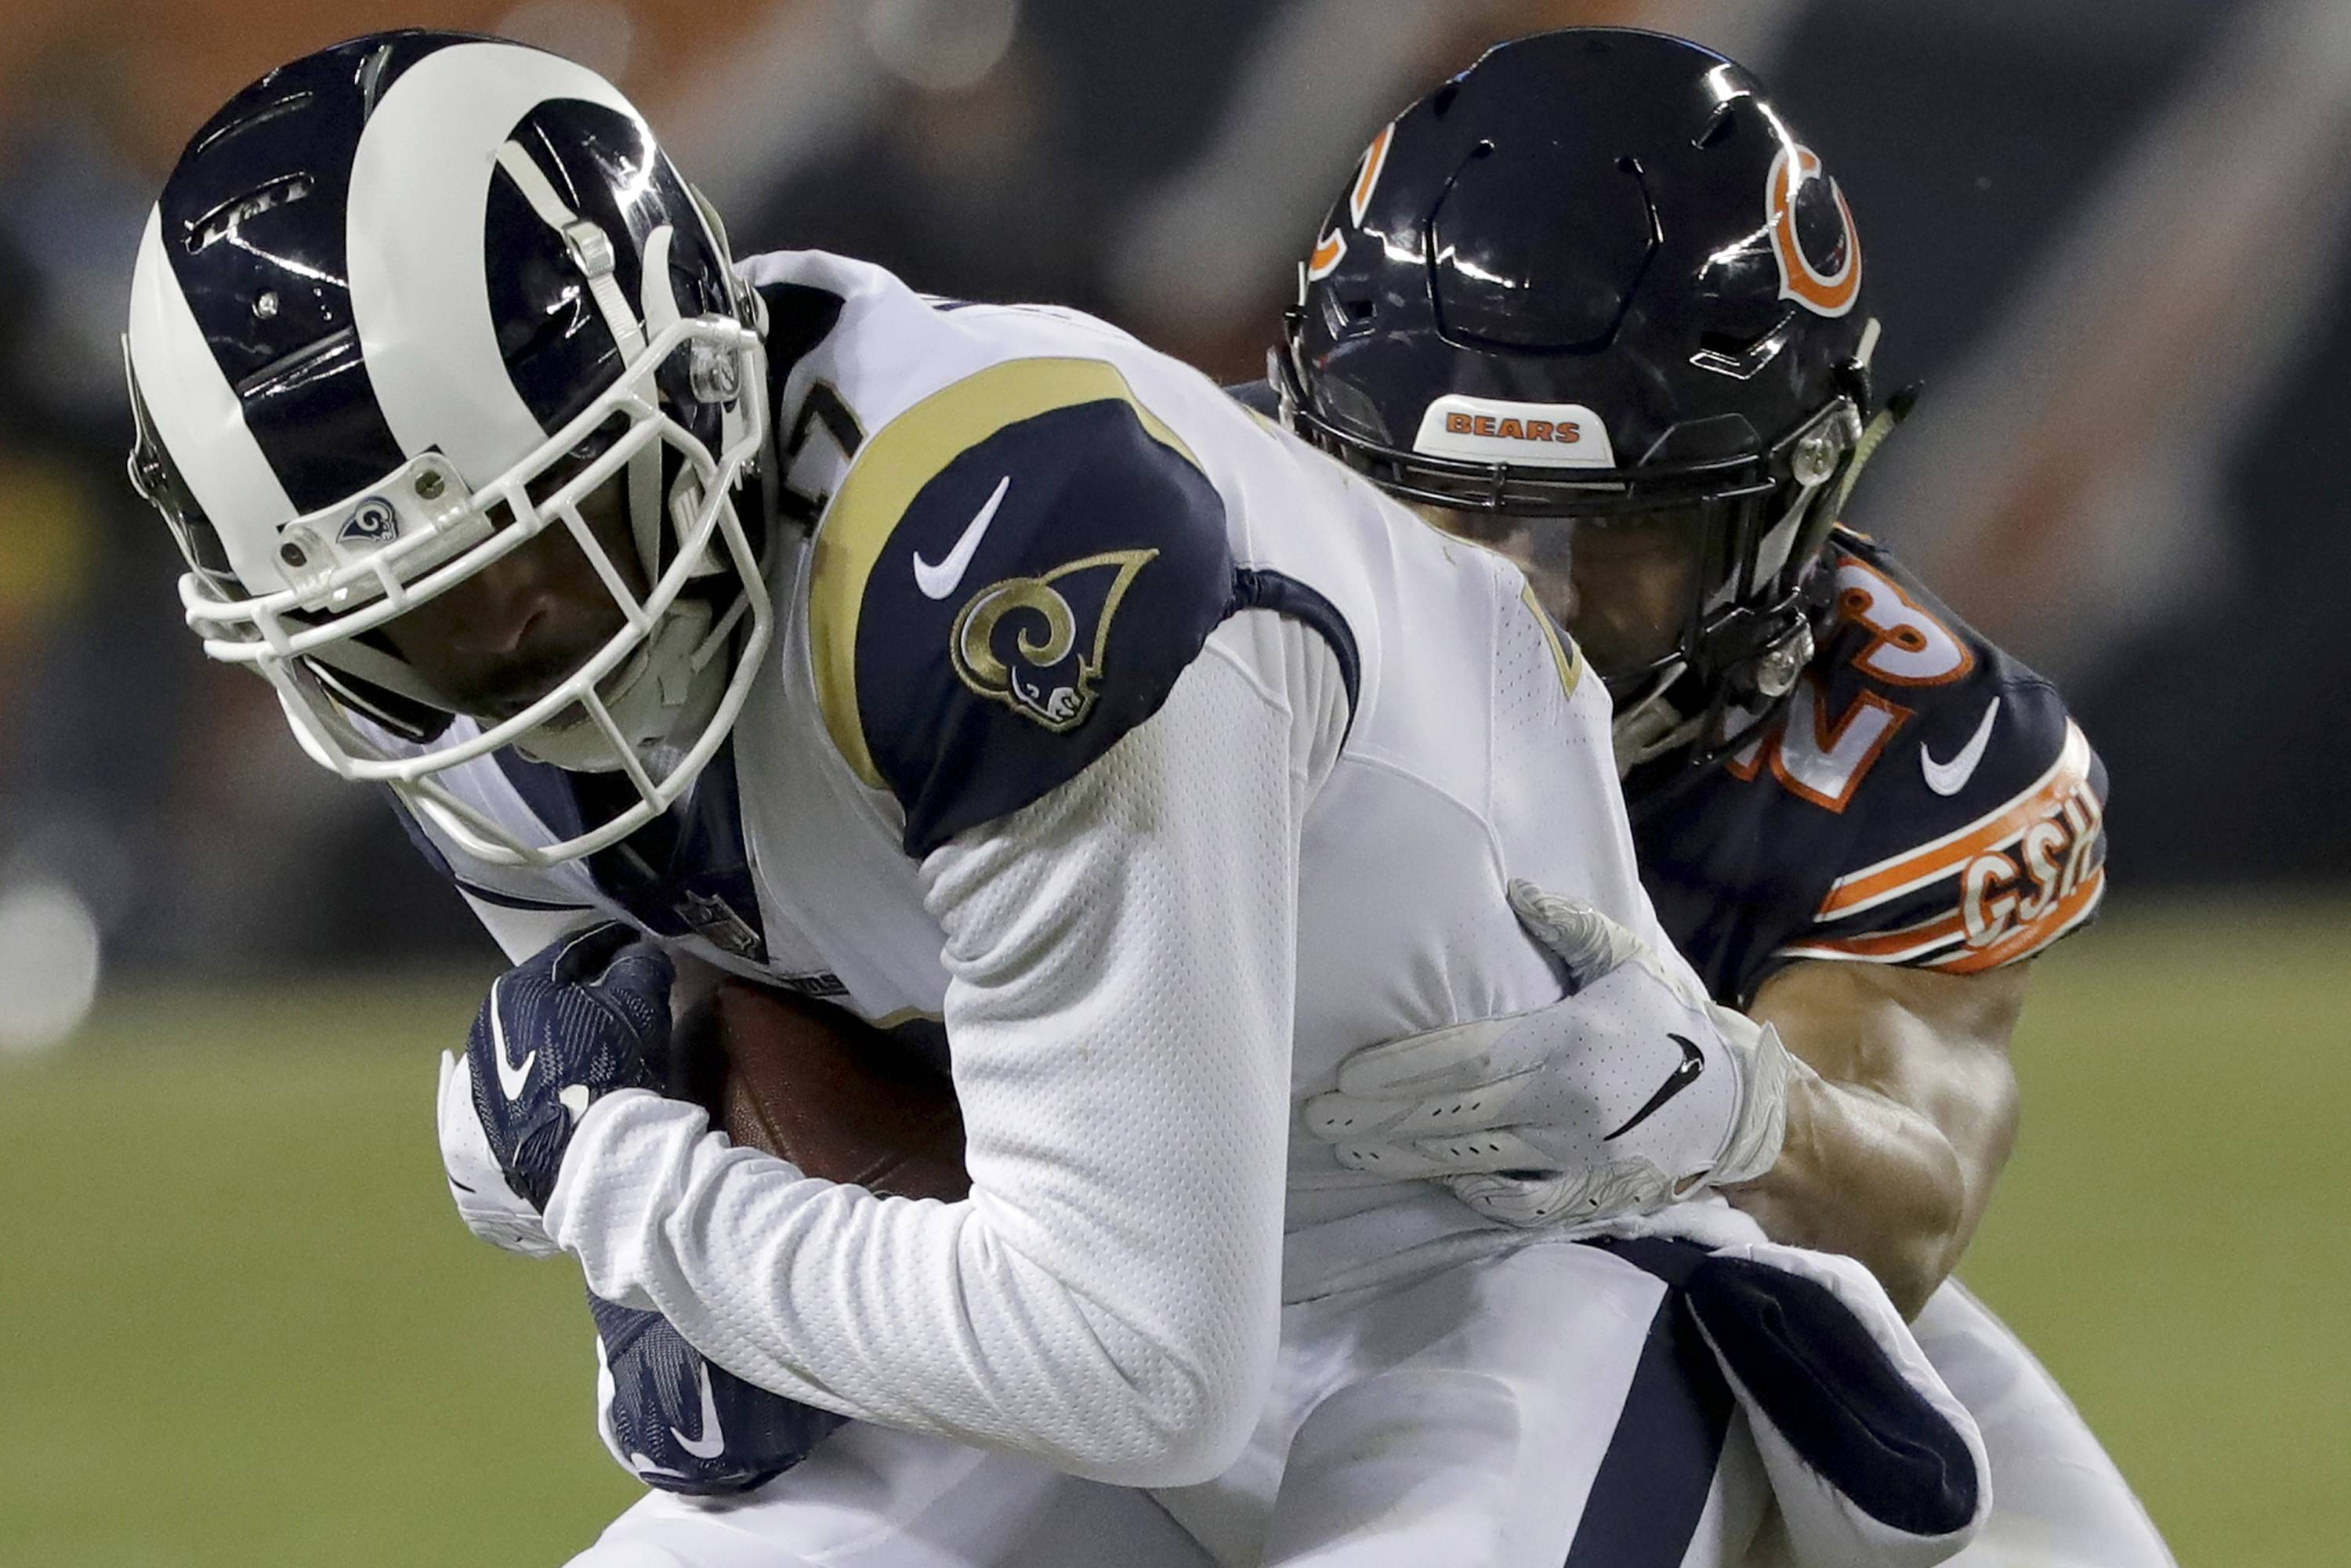 Bears cornerback Kyle Fuller (23) tackles Los Angeles Rams wide receiver Robert Woods (17) during the first half on Sunday in Chicago. Once again, the Bears' defense carried the day and stomped all over the high-flying Rams offense.